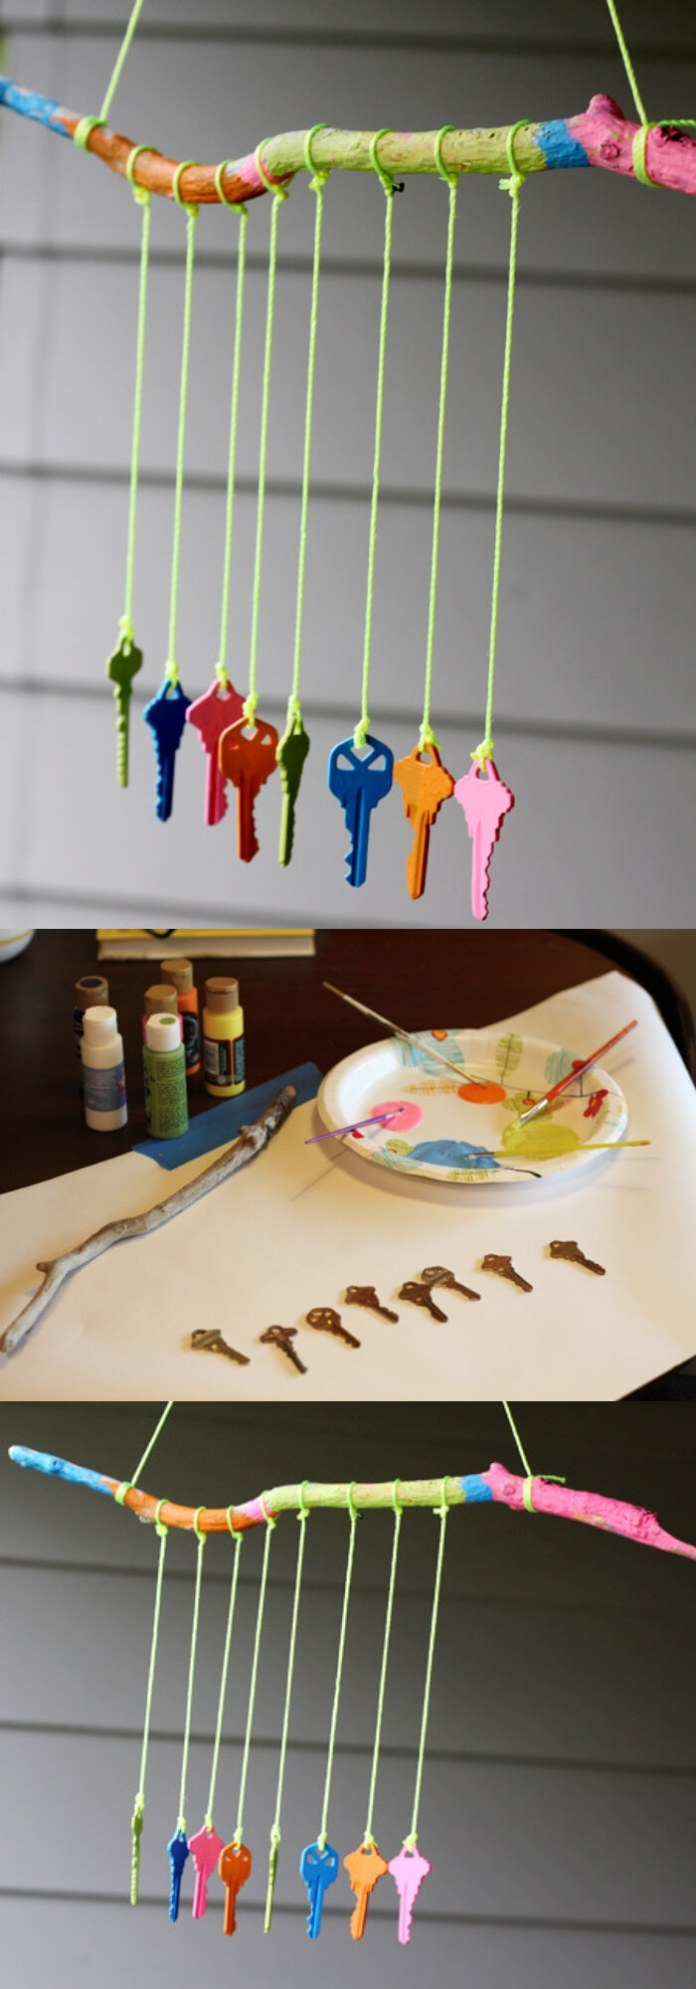 DIY Key Wind Chime for Kids